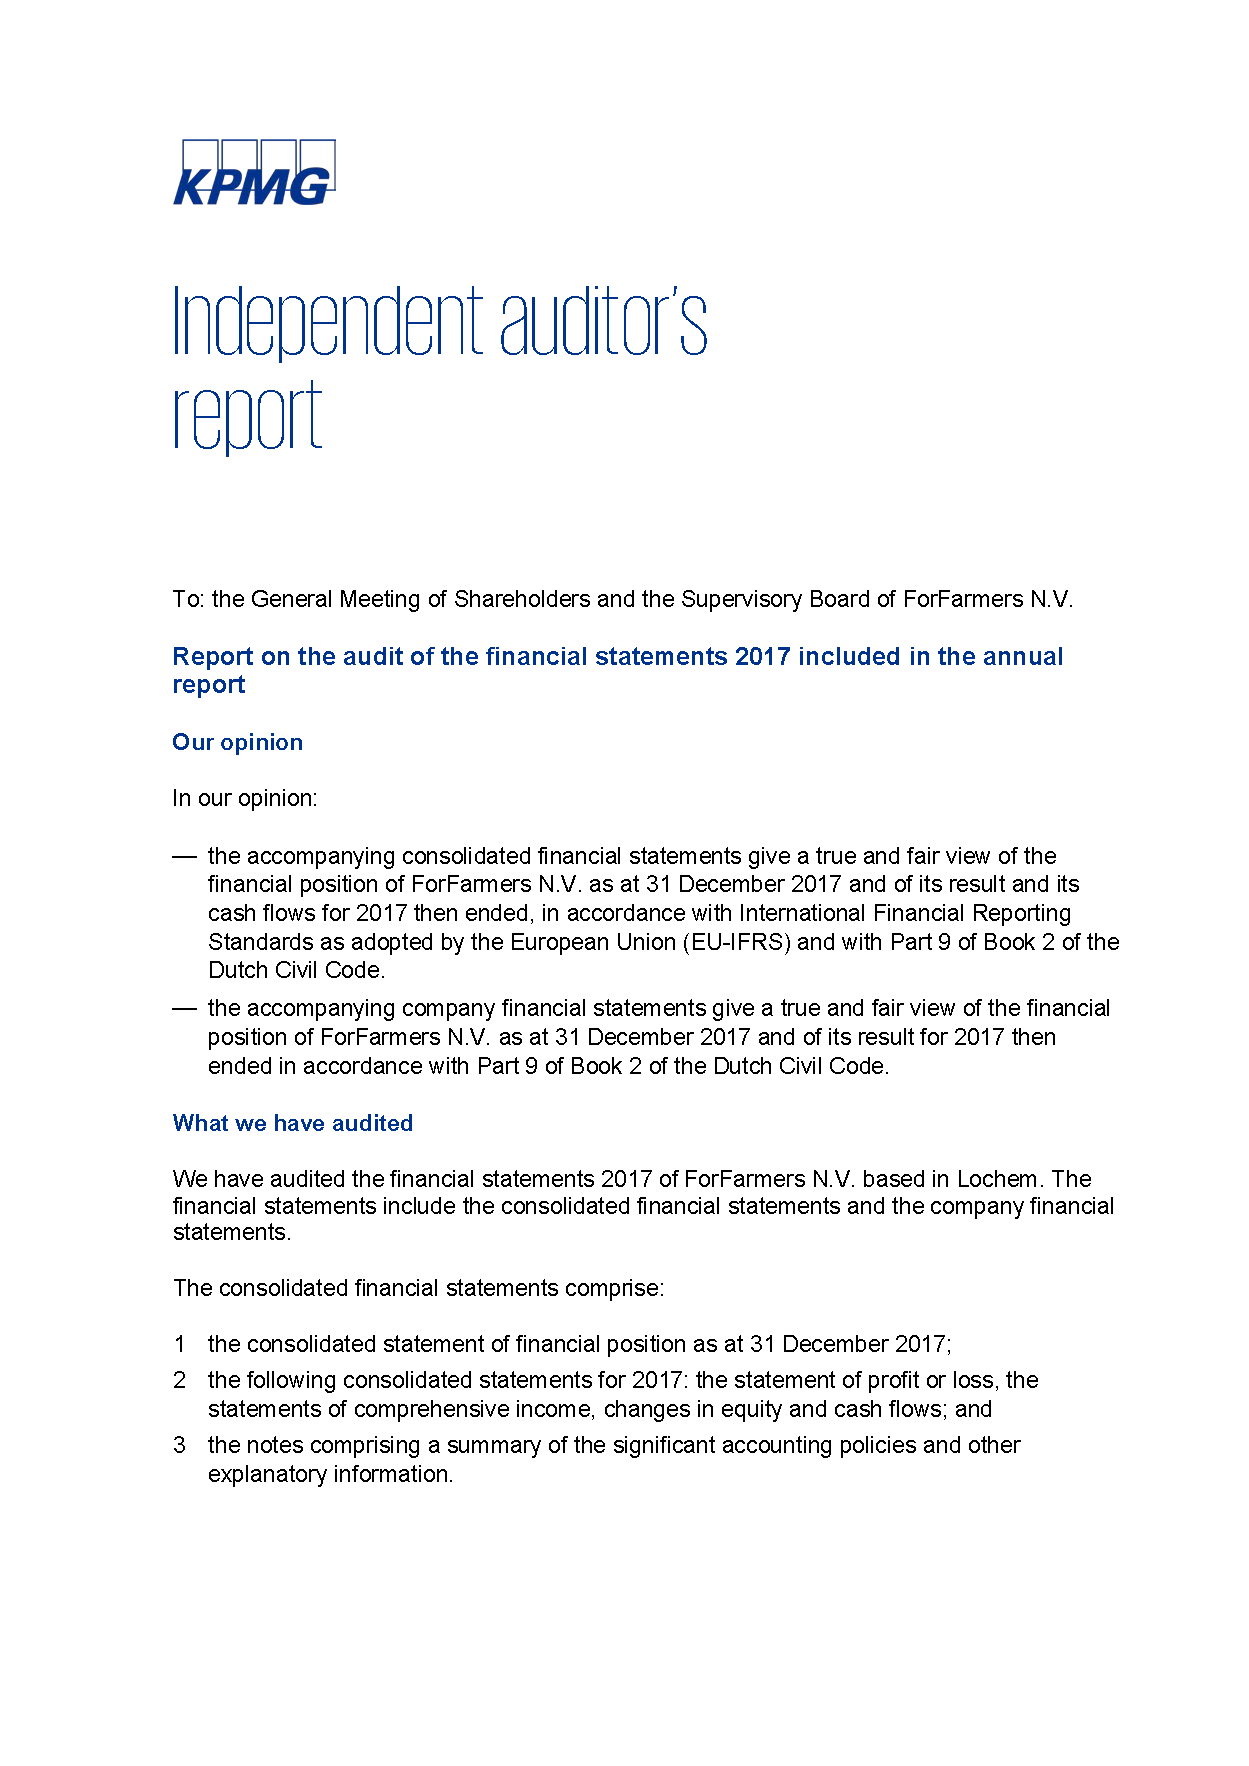 Forfarmers annual report 2017 254 independent auditors report independent auditors report thecheapjerseys Choice Image